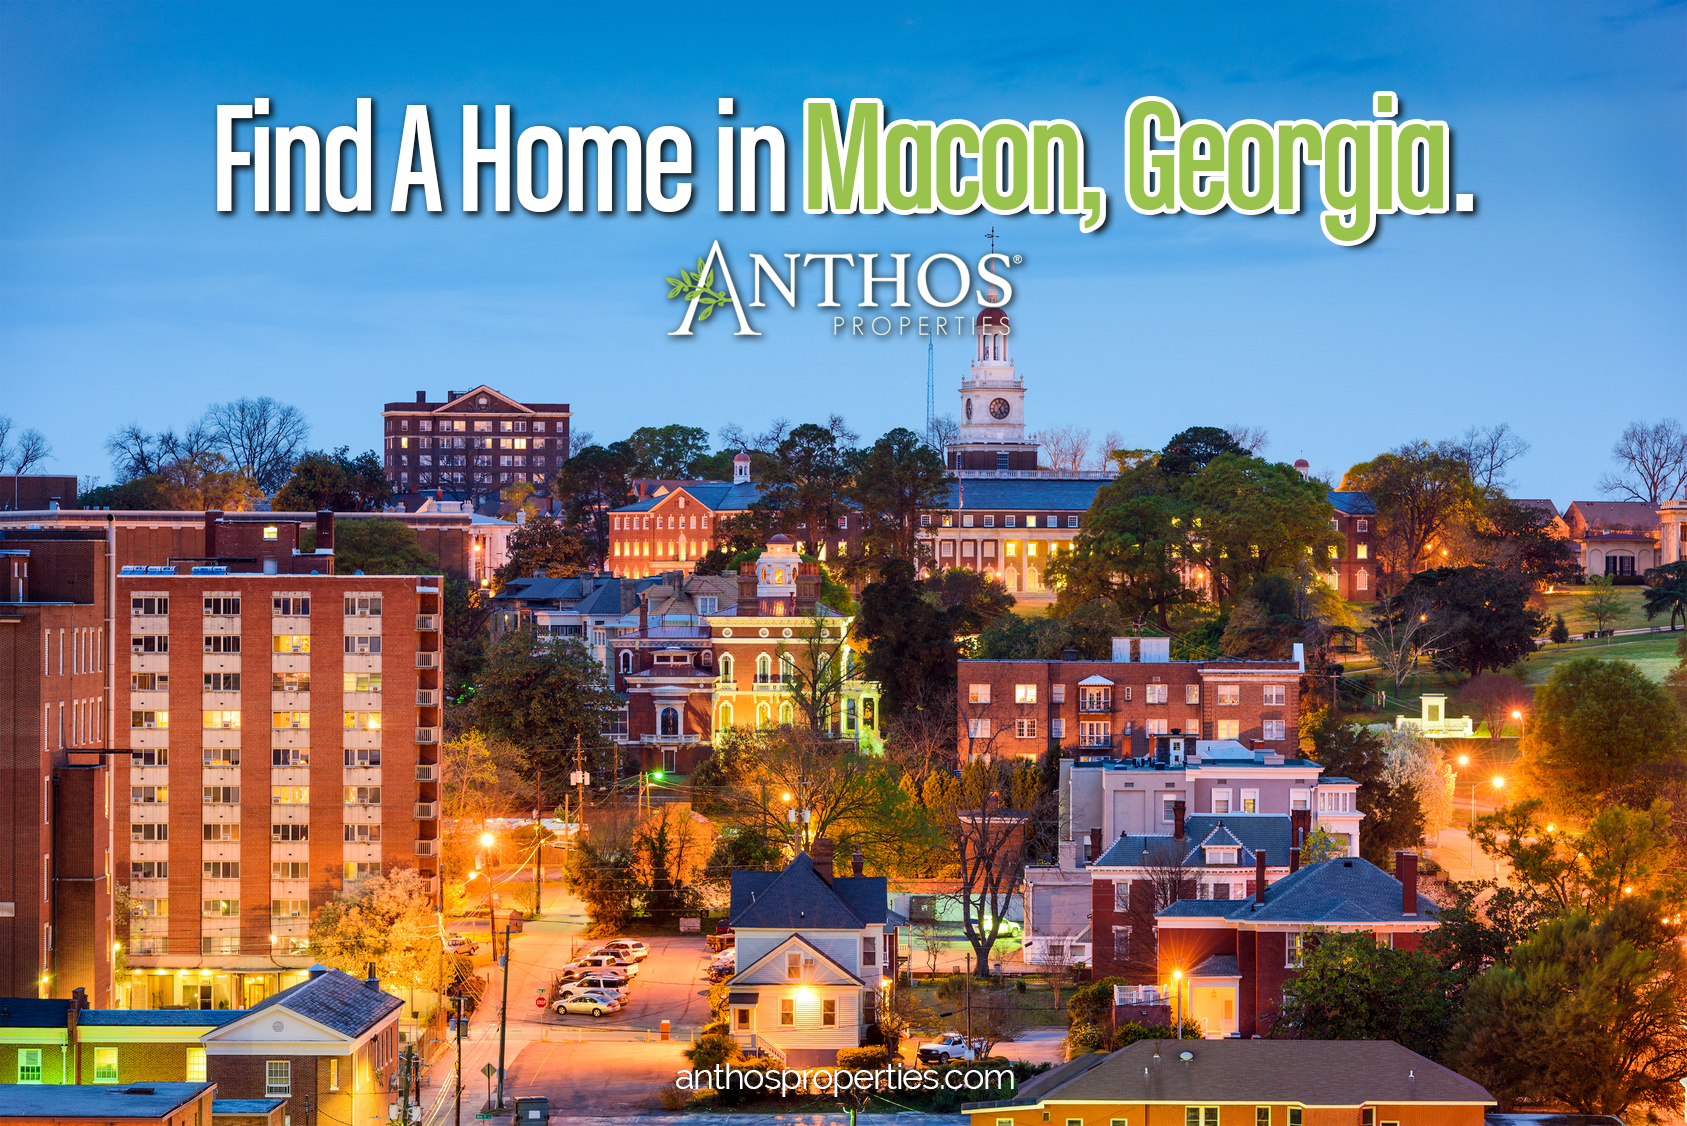 Macon Georgia USA